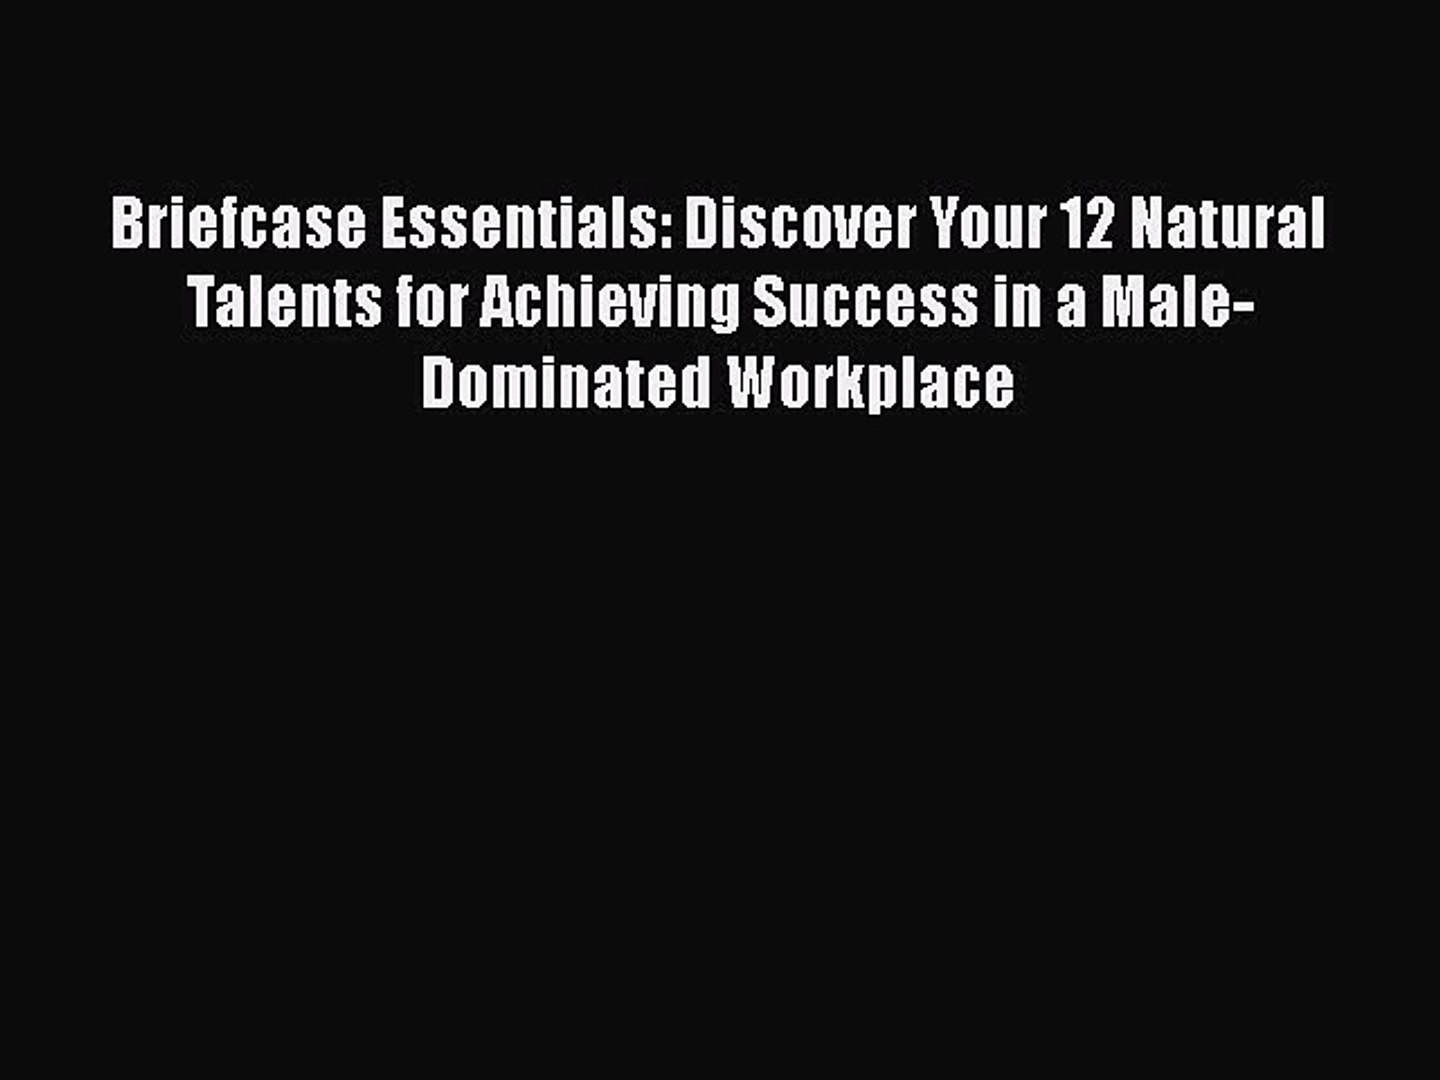 Read Briefcase Essentials: Discover Your 12 Natural Talents for Achieving Success in a Male-Dominate